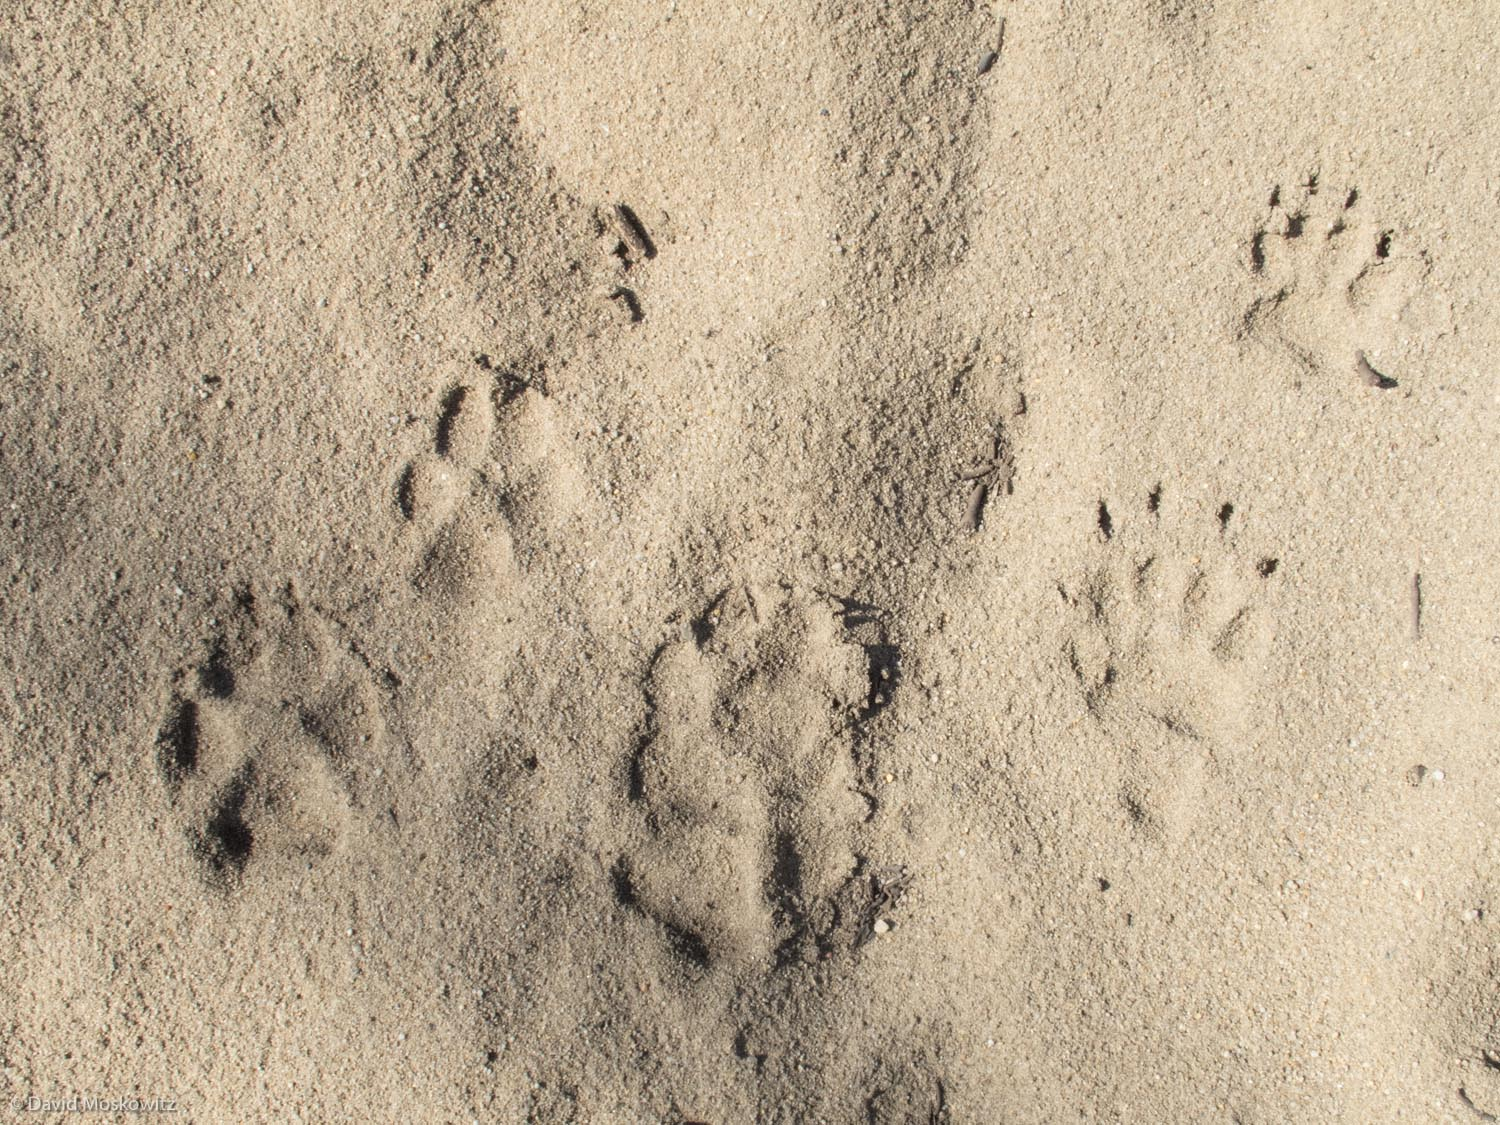 Tracks of two young wolves (Canis lupus, left and middle) and a large European badger (Meles meles) in sand. Saxony, Germany.